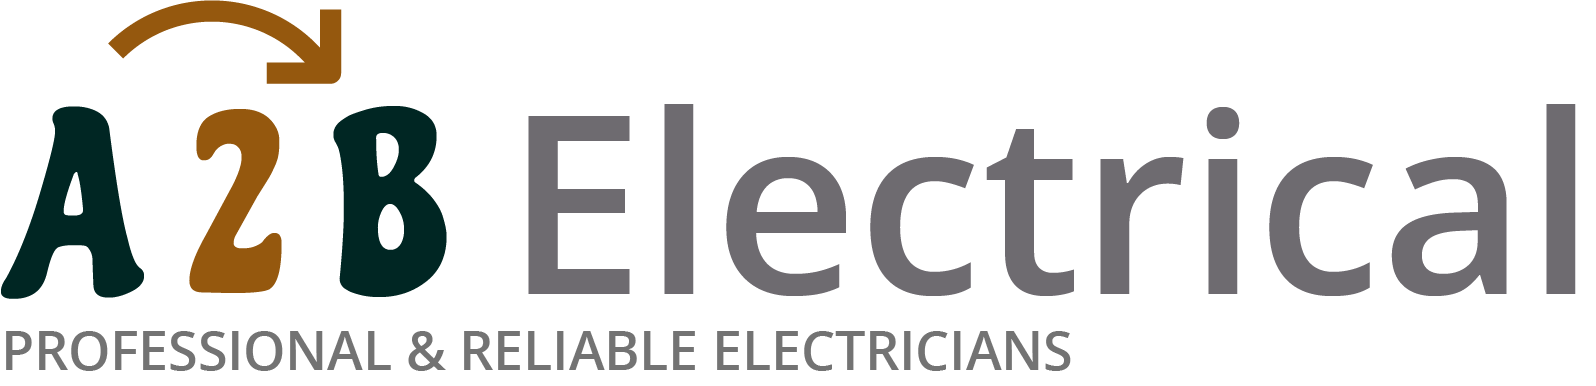 If you have electrical wiring problems in Sanderstead, we can provide an electrician to have a look for you.